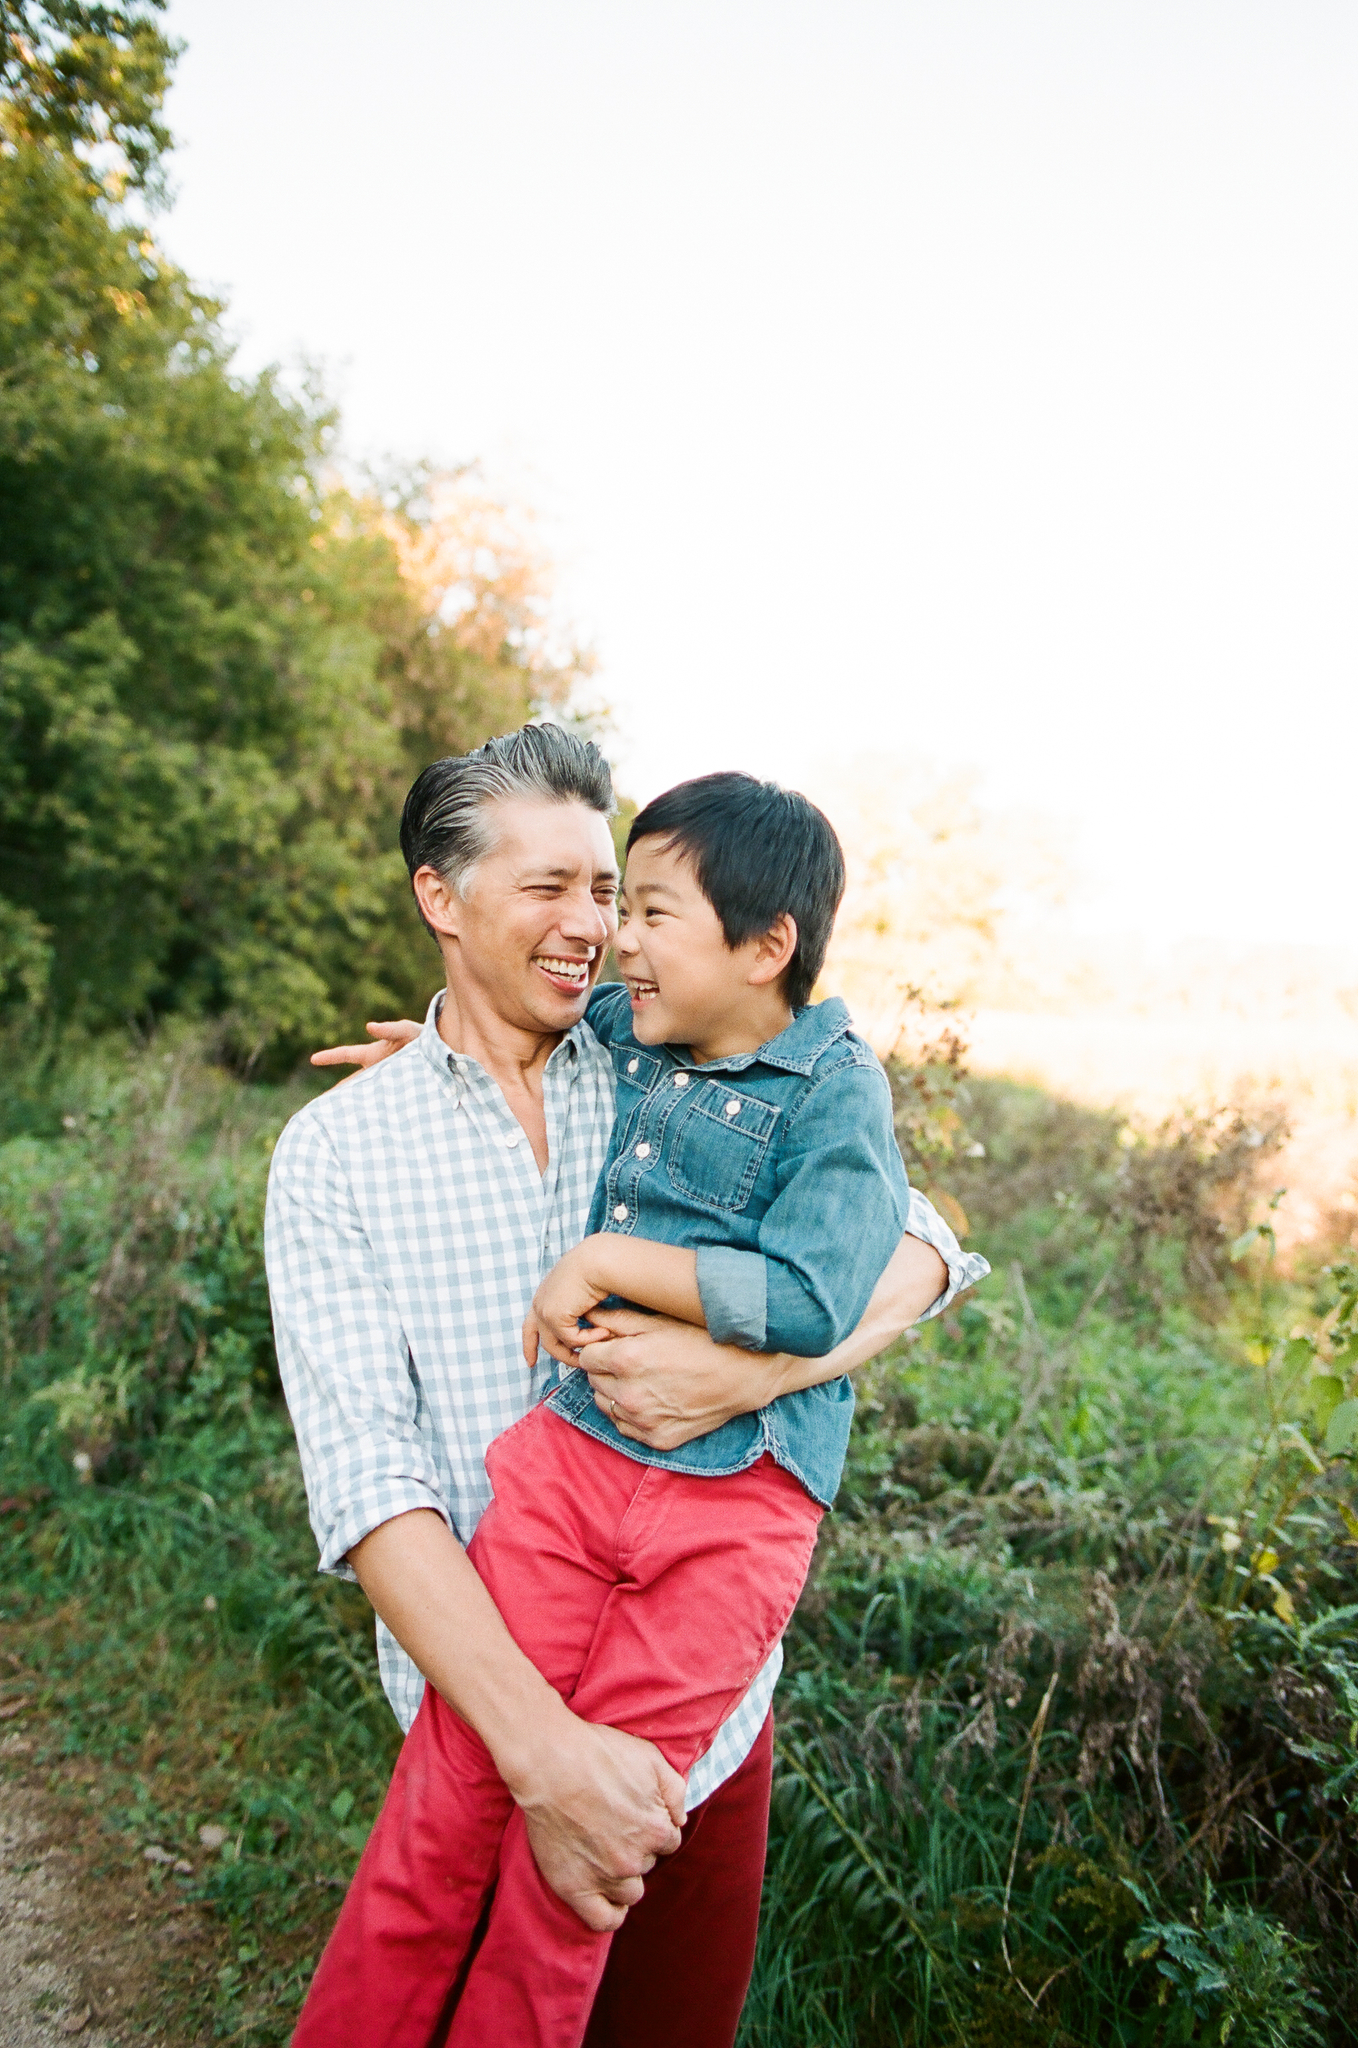 Family Photos at Wood Lake Nature Center in Richfield, Minnesota